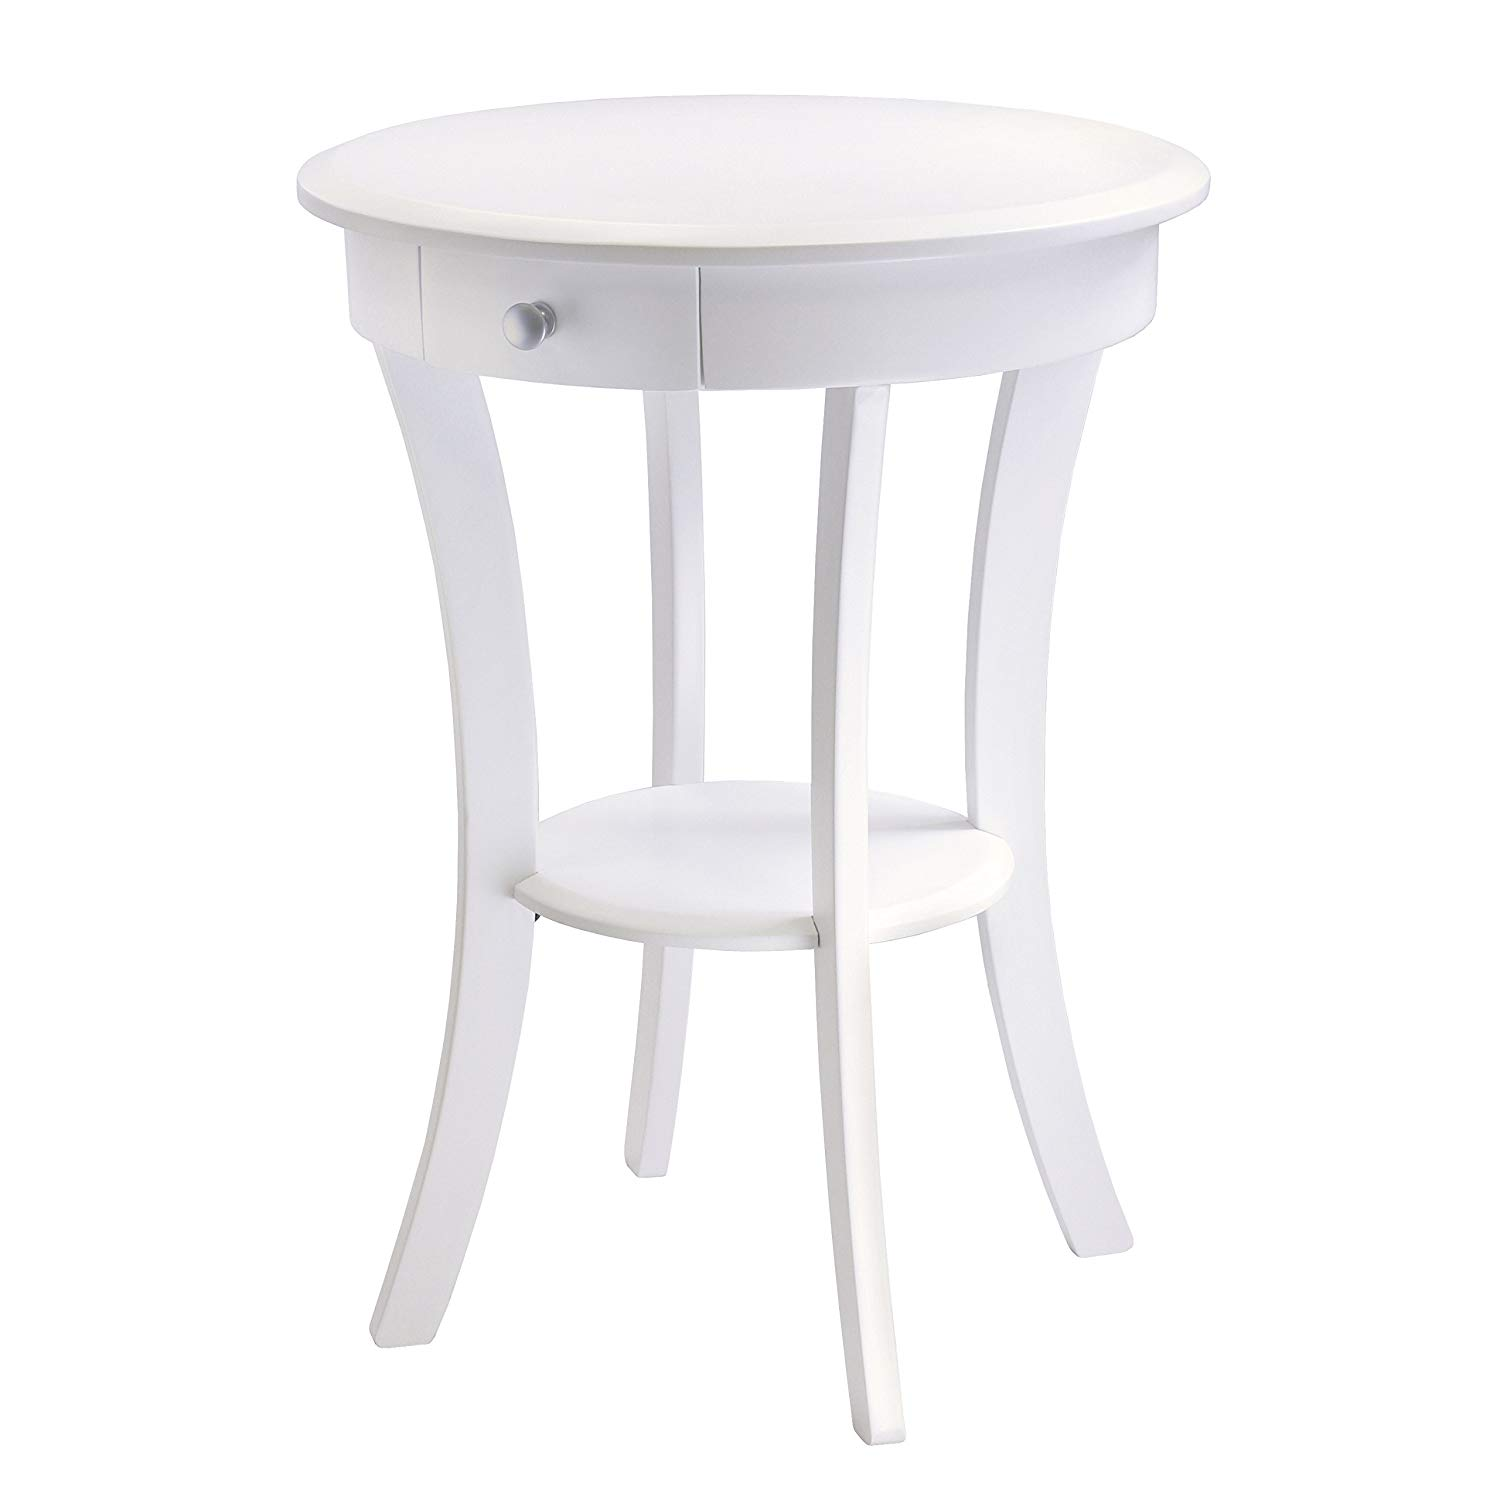 winsome wood sasha accent table with drawer curved legs end white finish kitchen dining tables small wine kirkland dog metal couch vintage lawn chairs grain kohls coupon code